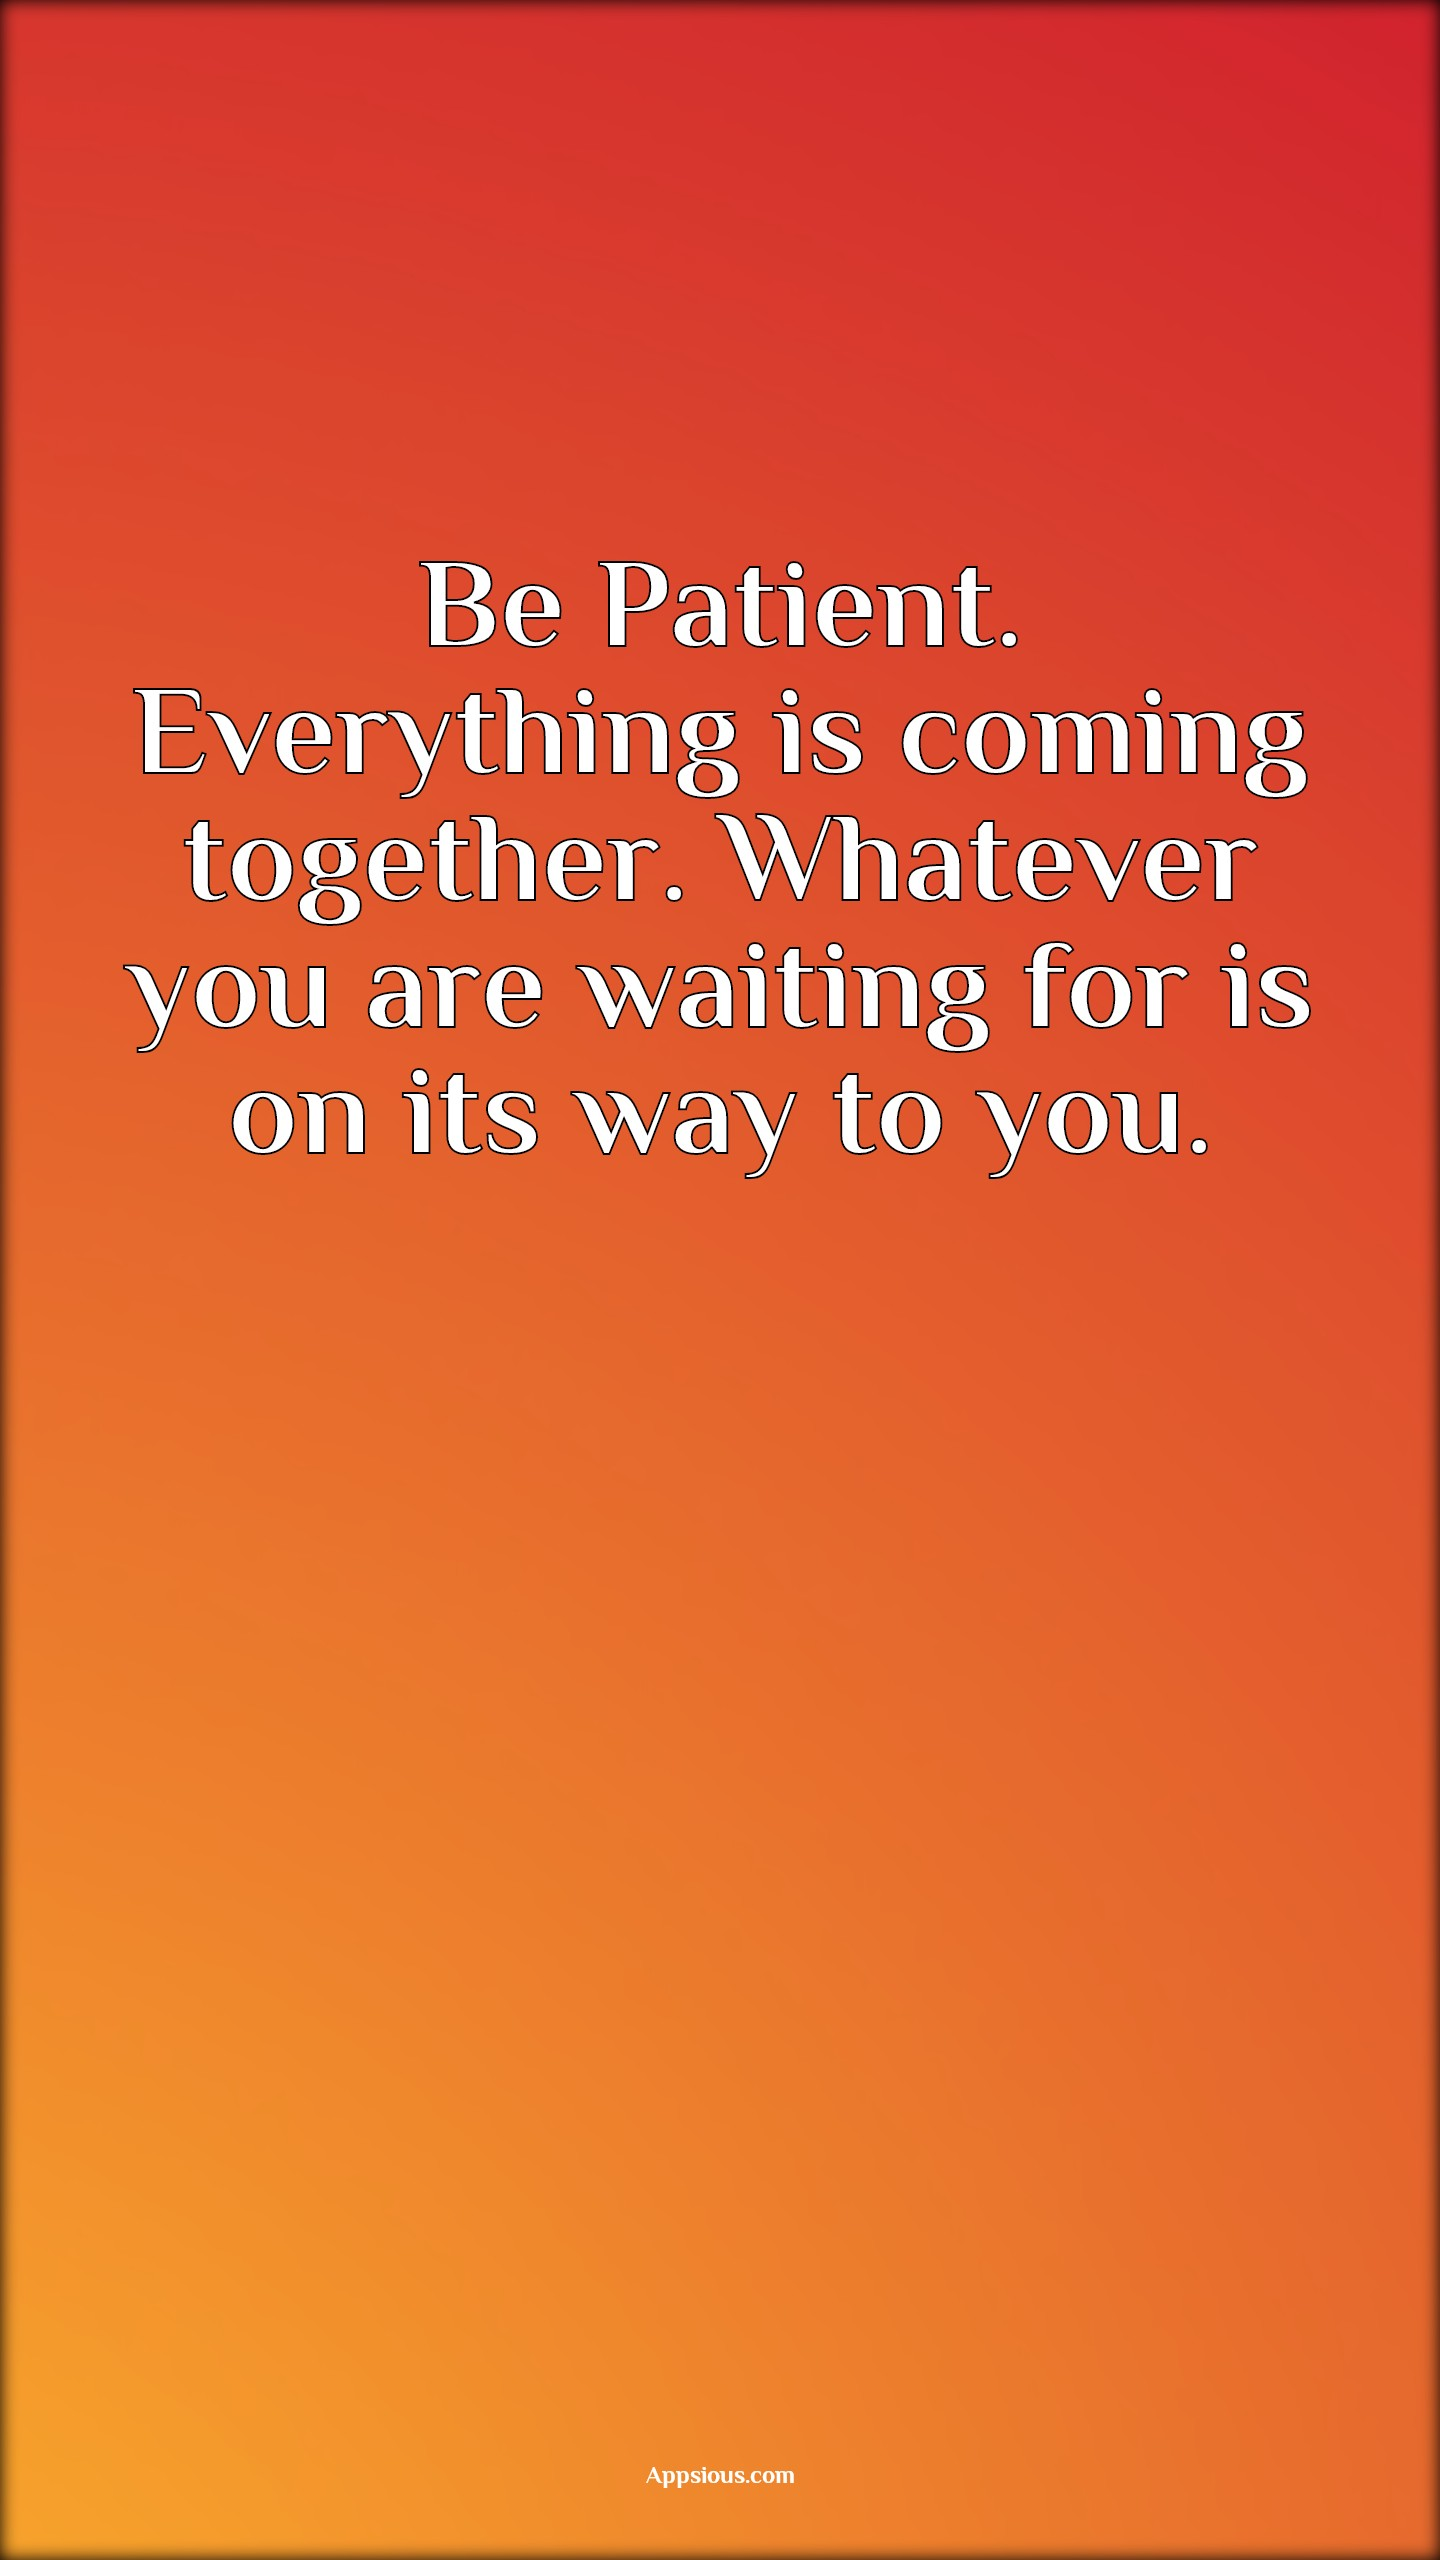 Be Patient. Everything is coming together. Whatever you are waiting for is on its way to you.